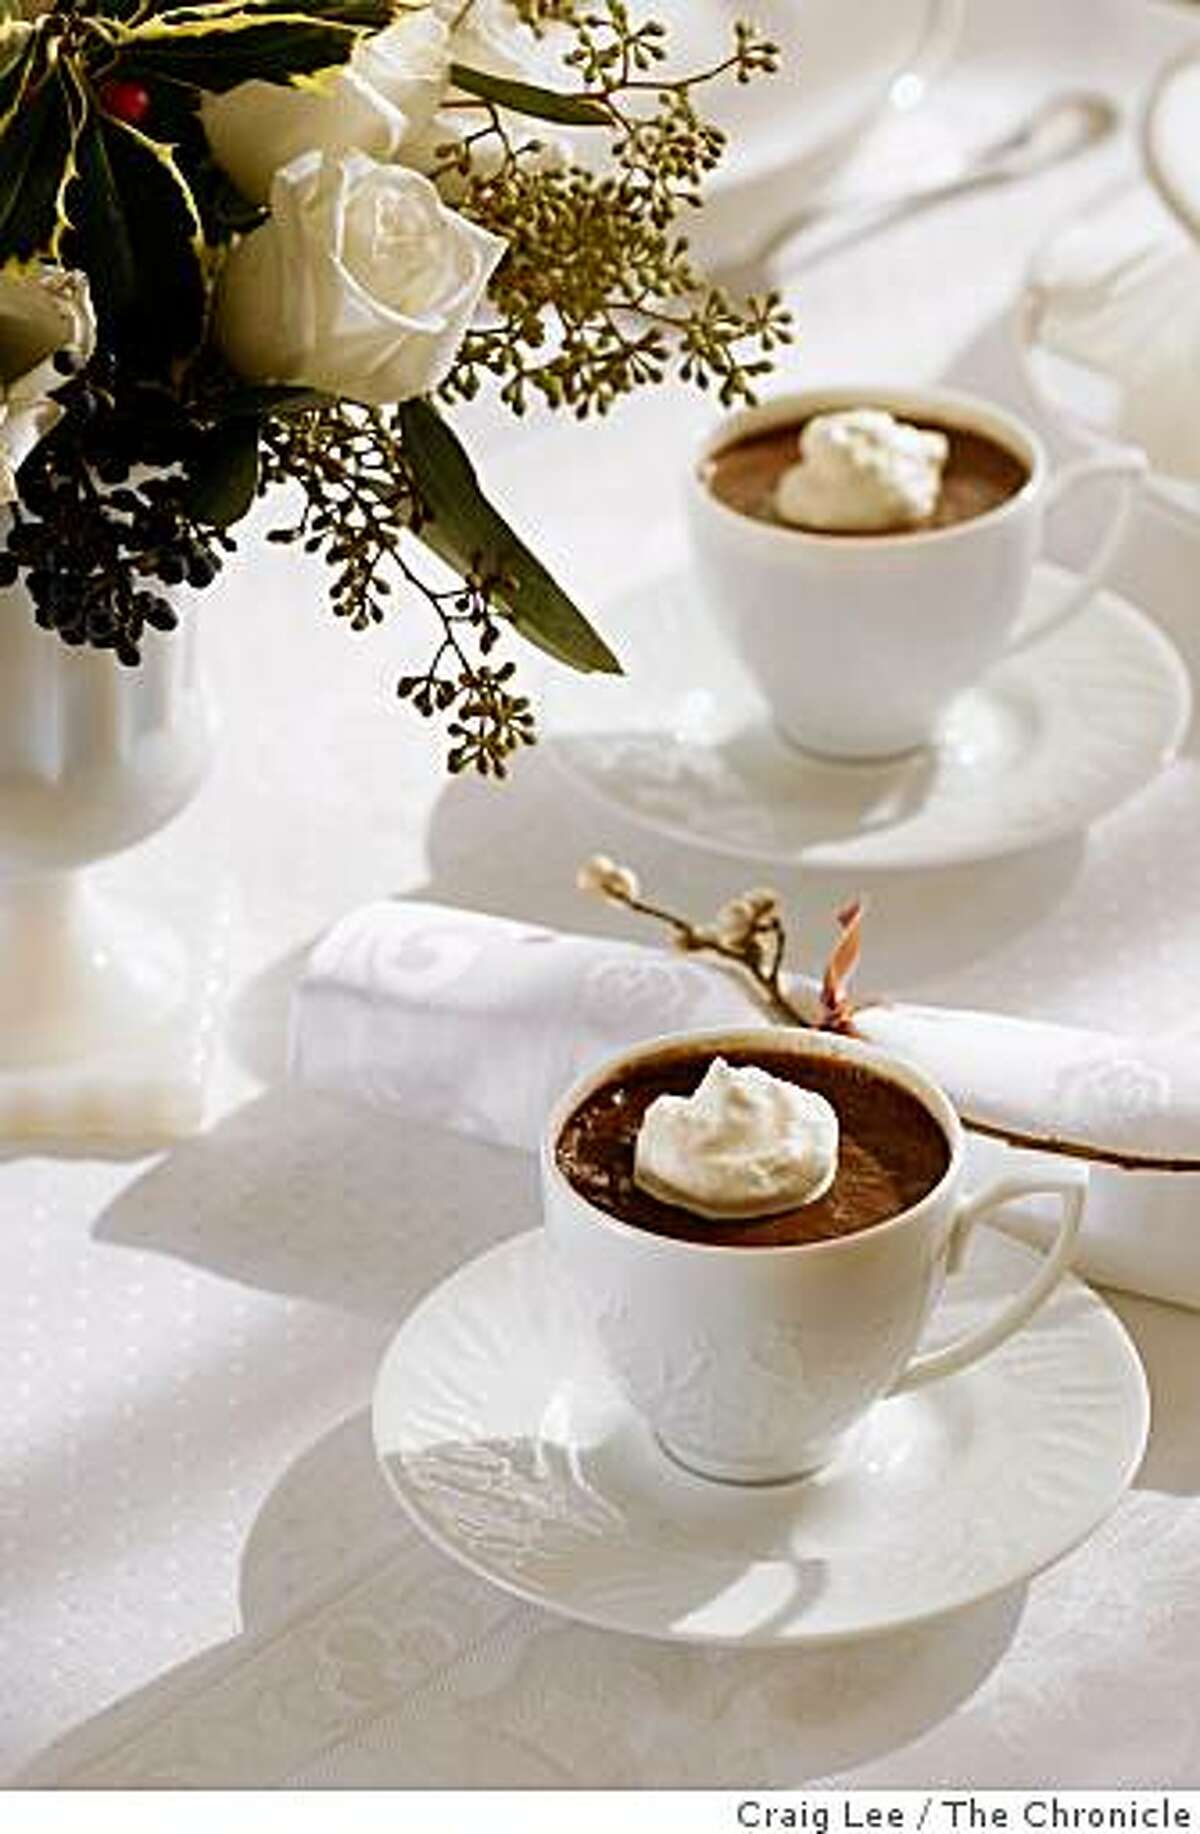 Mocha Pots de Creme for a holiday dinner in San Francisco, Calif., on December 10, 2008. Food styled by Ethel Brennan.